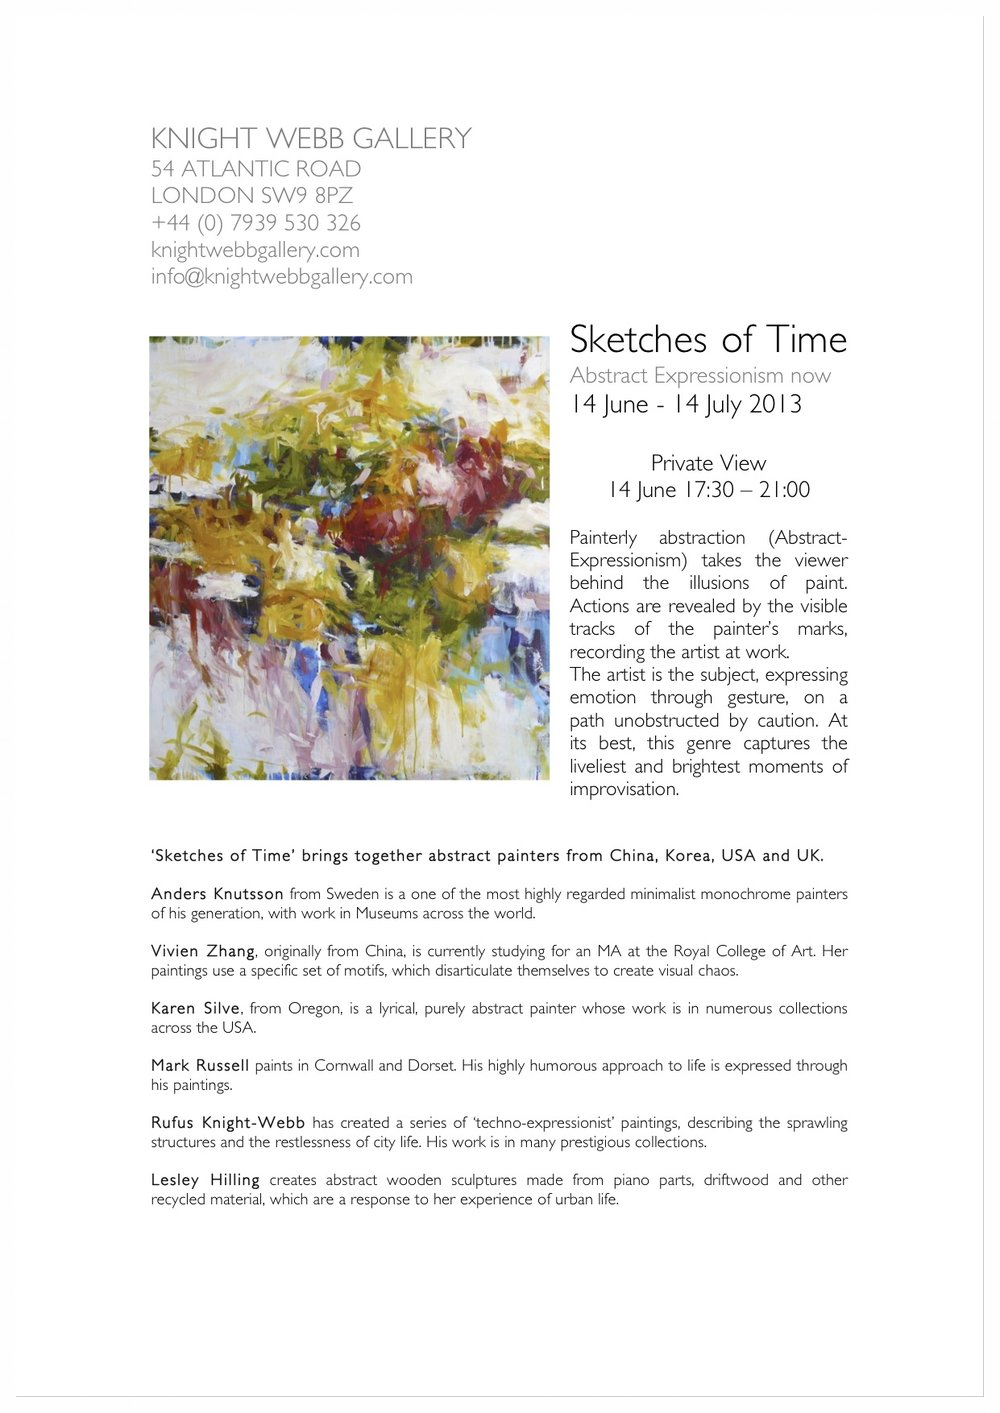 — Press Release: Sketches of Time, Abstract Expressionism now, June/July, 2013